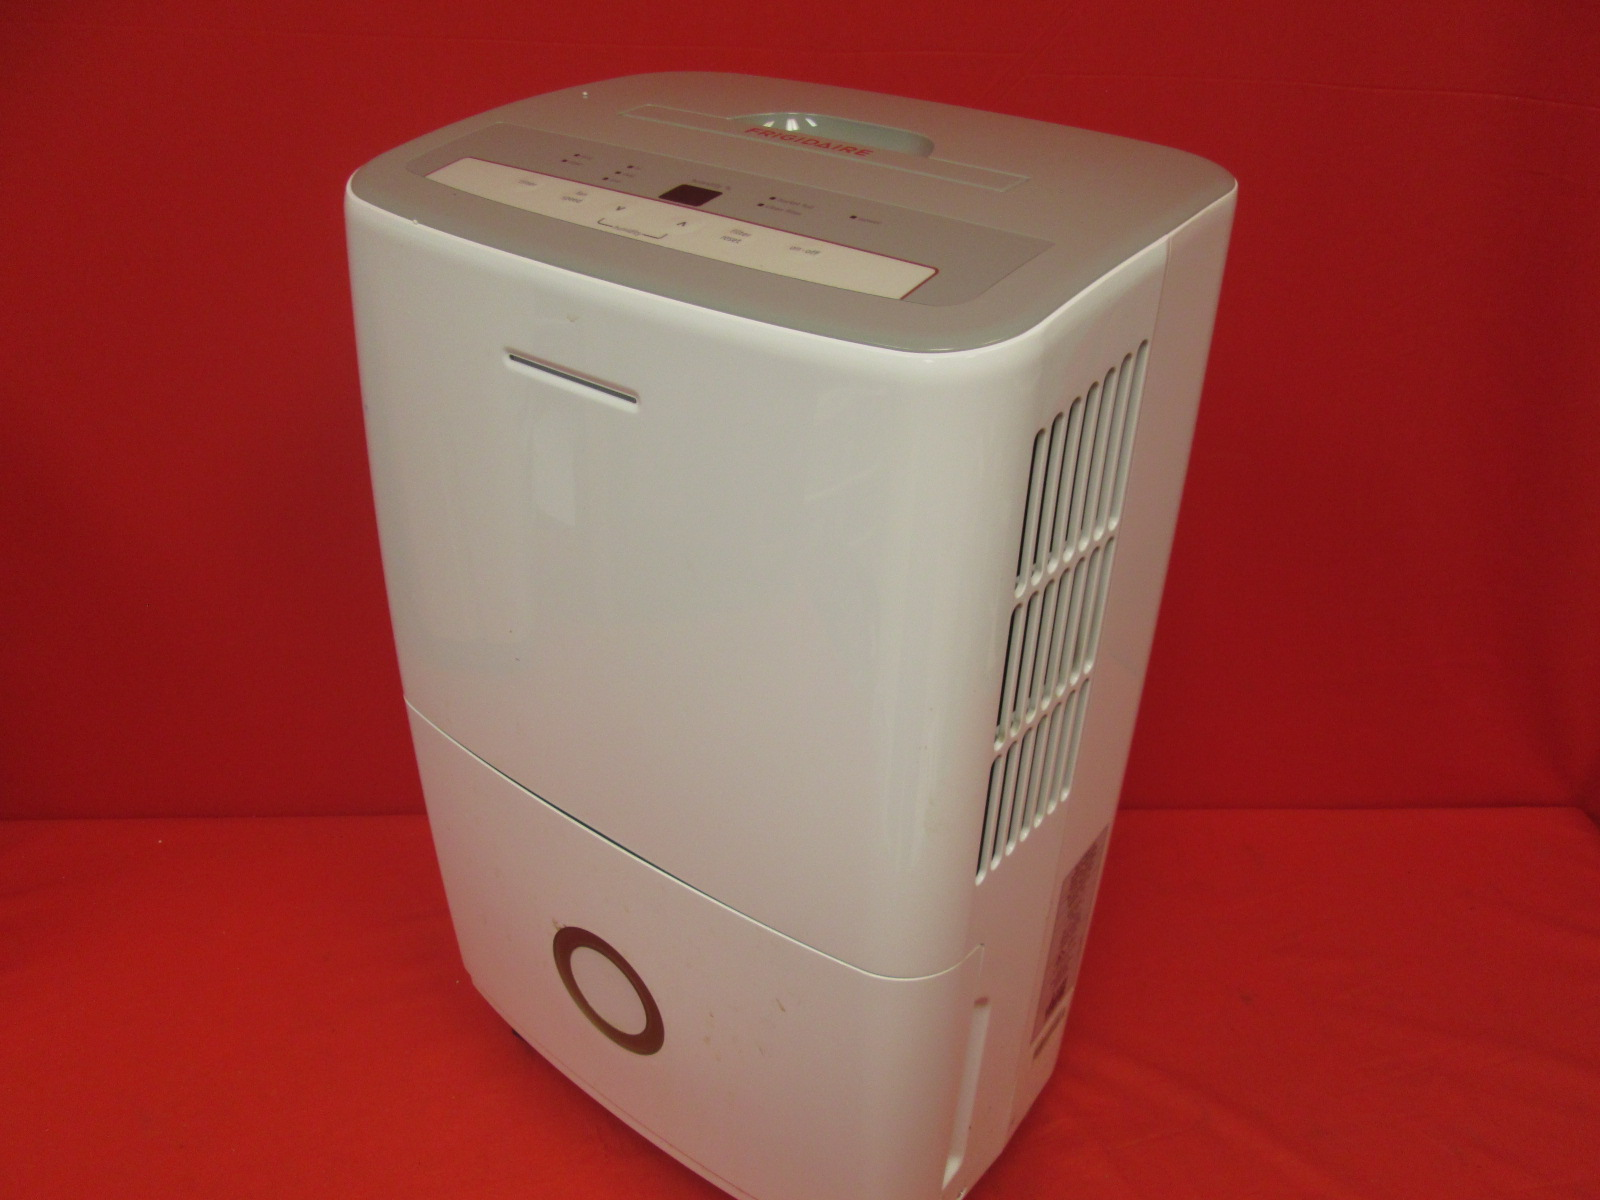 Frigidaire 50-PINT Dehumidifier With Effortless Humidity Control White